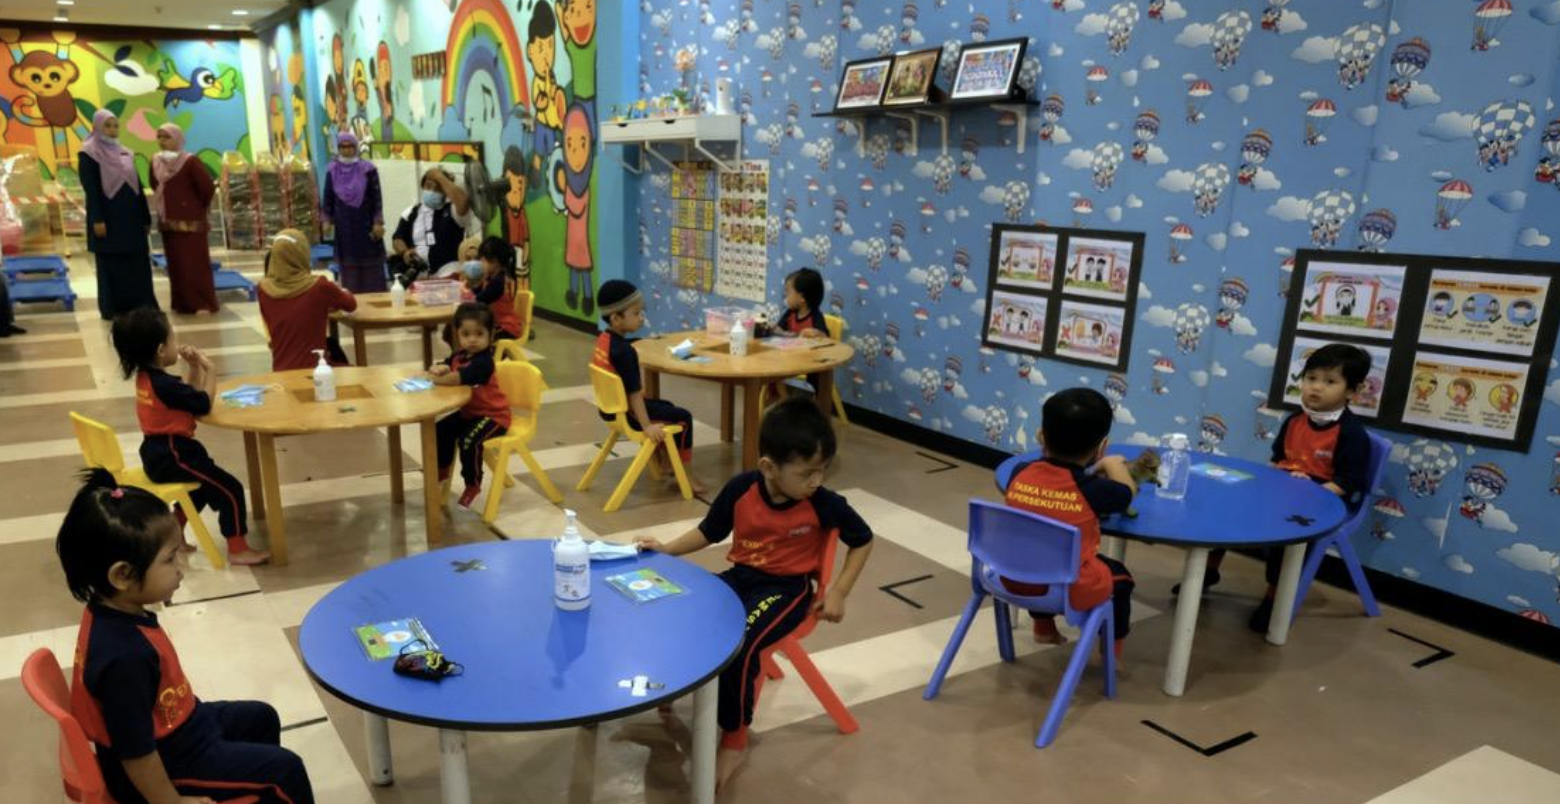 Kemas kindies, childcare centres to resume operations on March 1